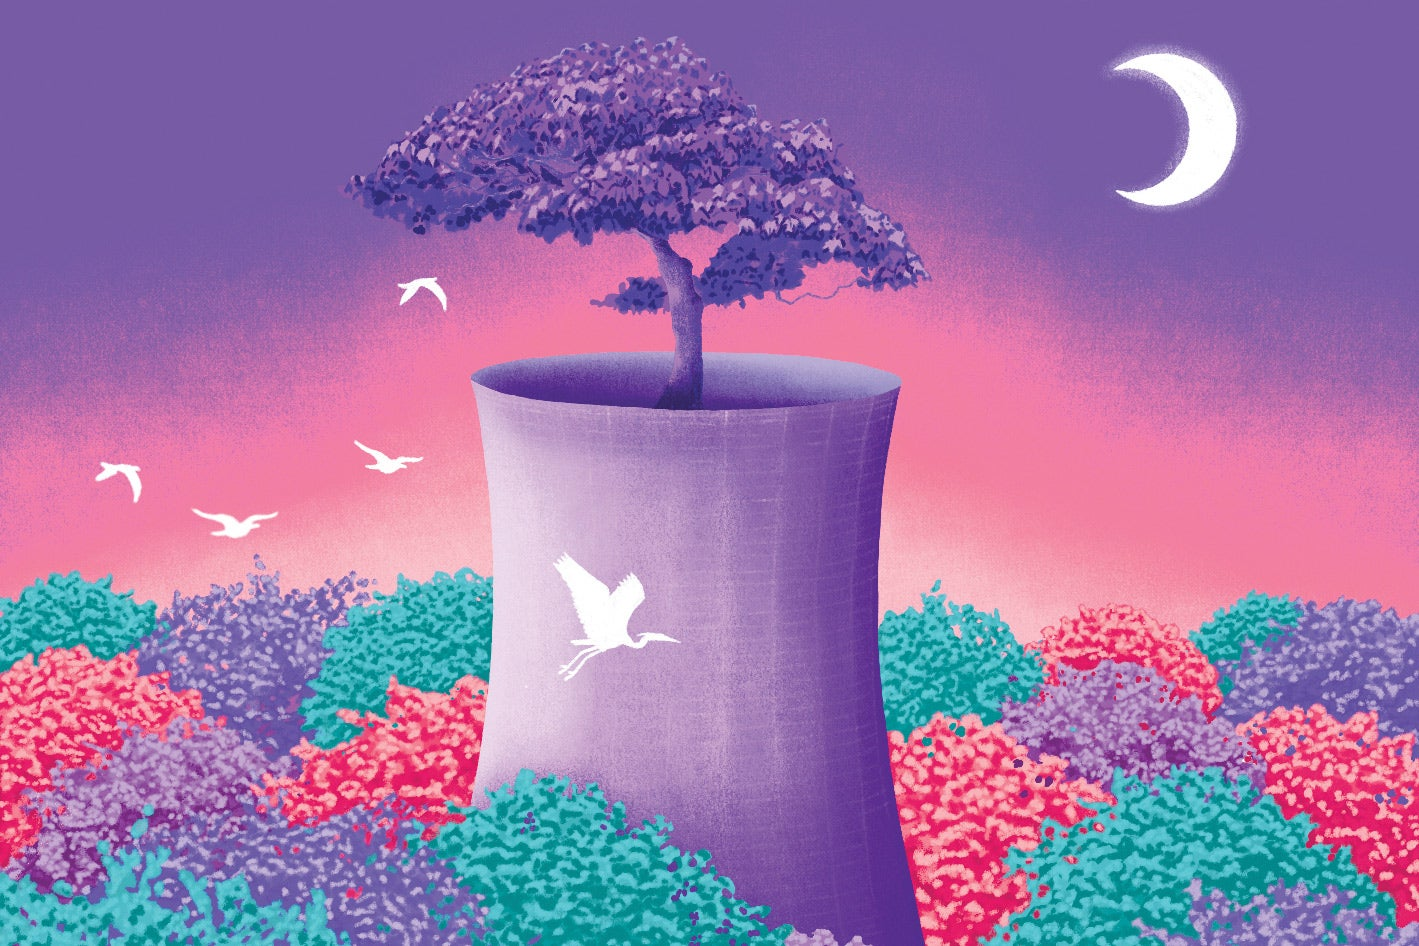 White birds on a pink, purple, and green illustration of the Fukushima nuclear plant